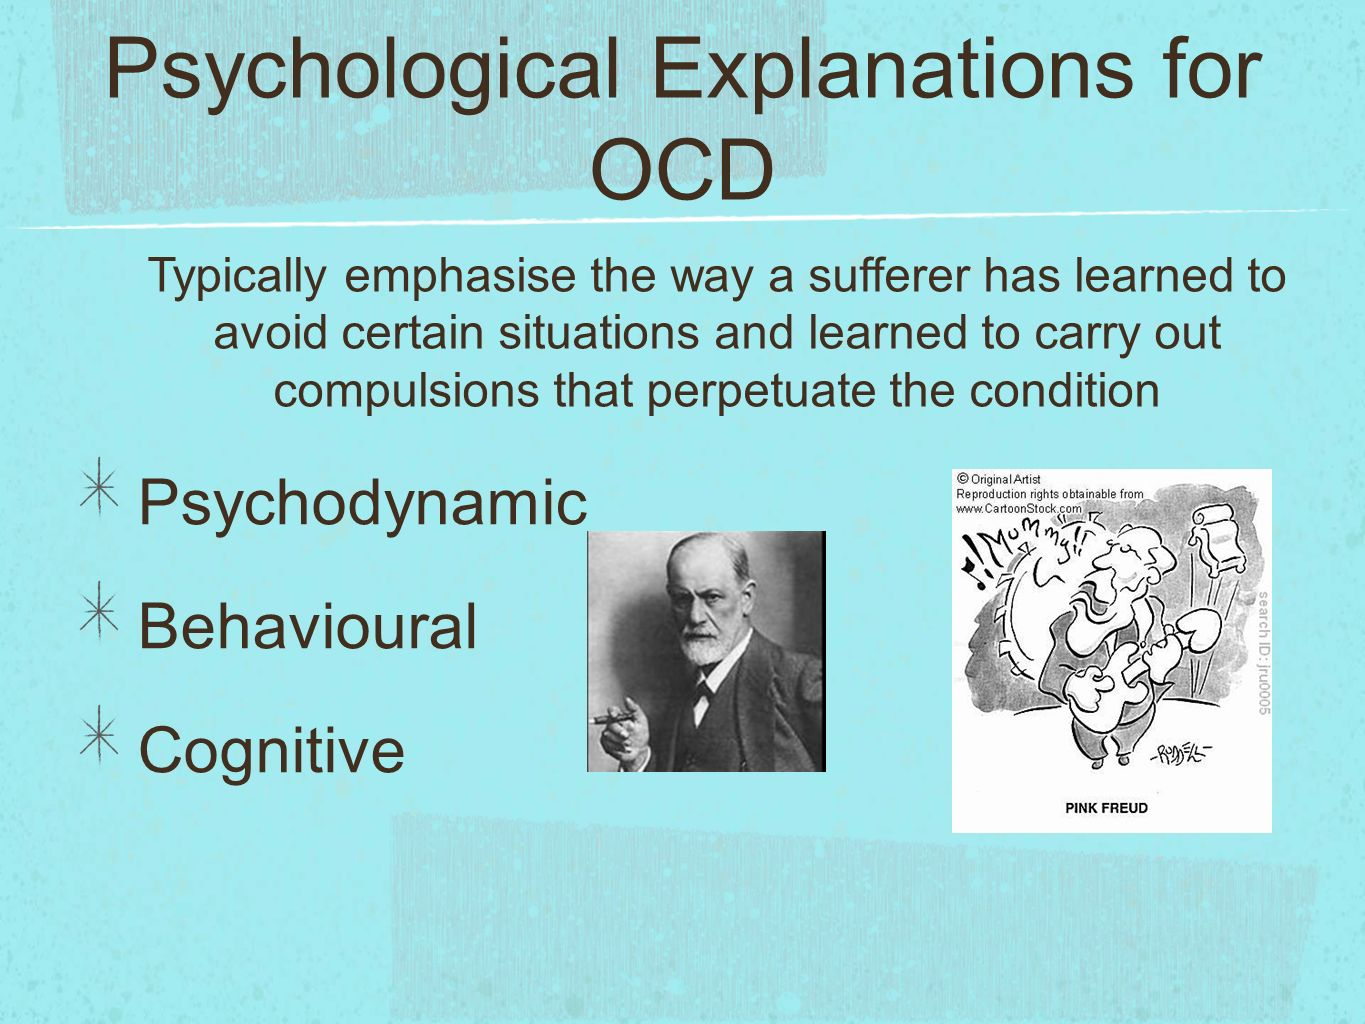 outline and evaluate psychological explanations for ocd essay Outline and evaluate psychological explanations for ocd (8+16 marks) one psychological explanation for ocd is the behavioural approach the behavioural approach breaks obsessions and.